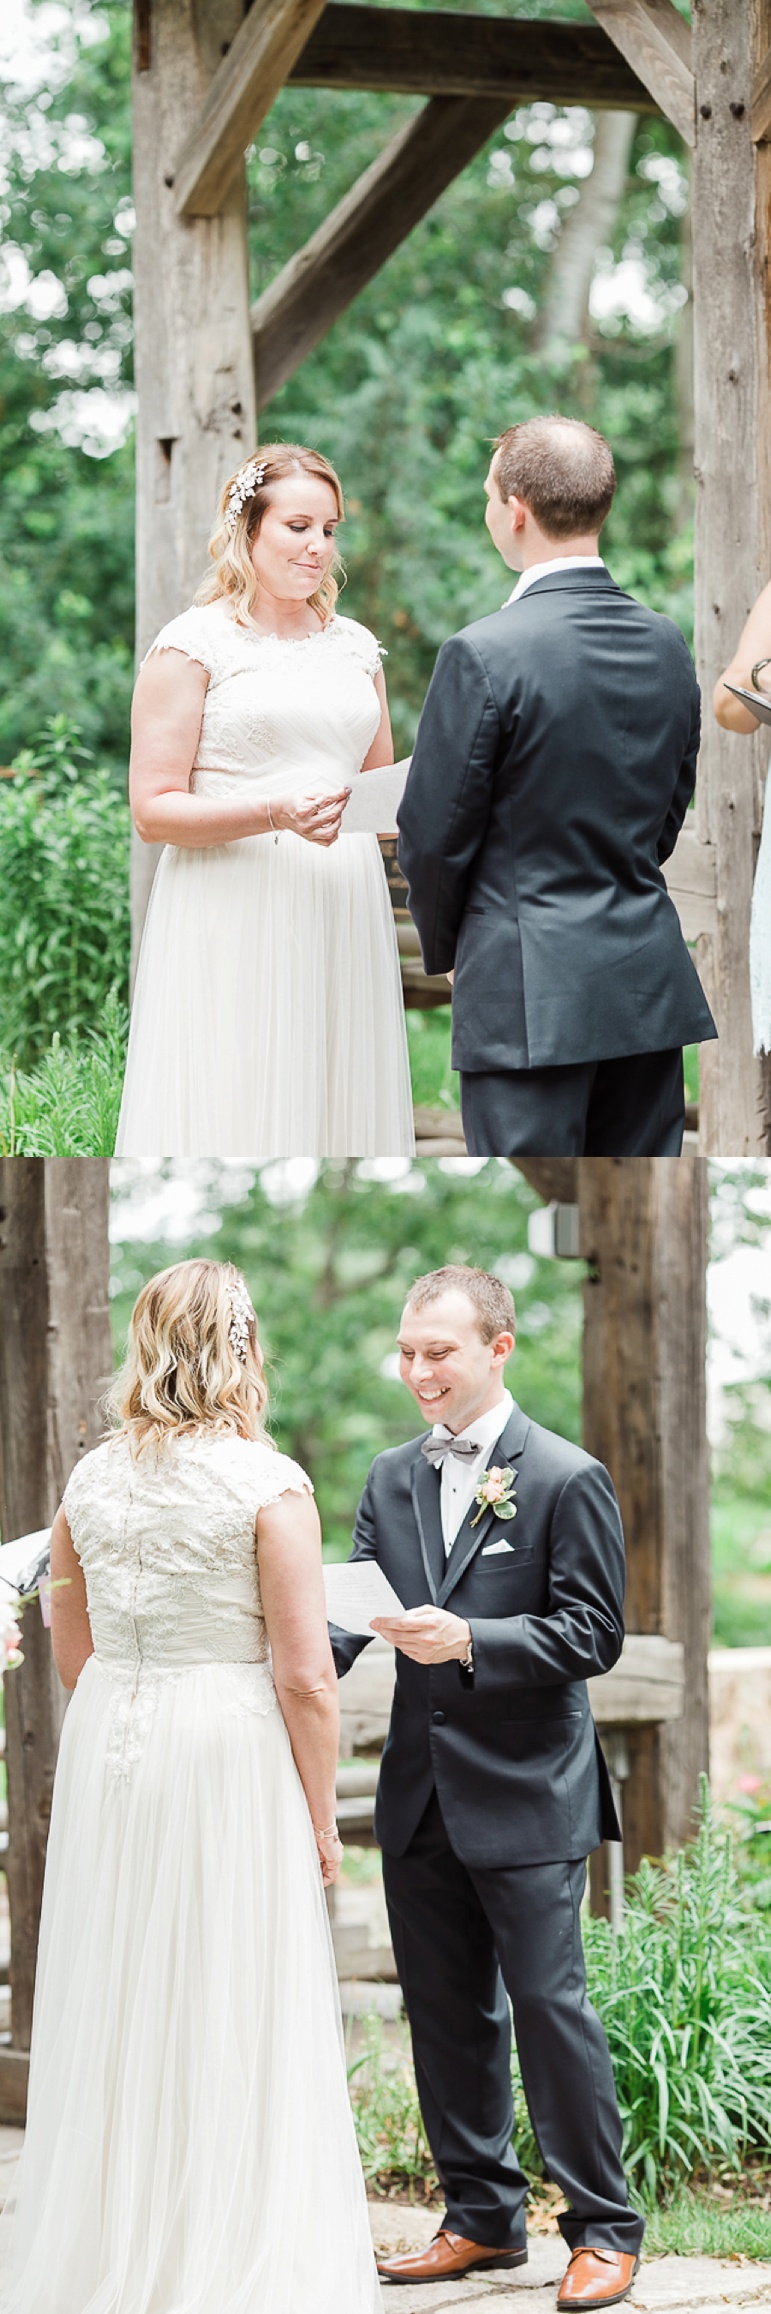 Outdoor Garden Weddings, Green Bay Botanical Gardens, Wedding Florist in Green Bay Pedal Pushers